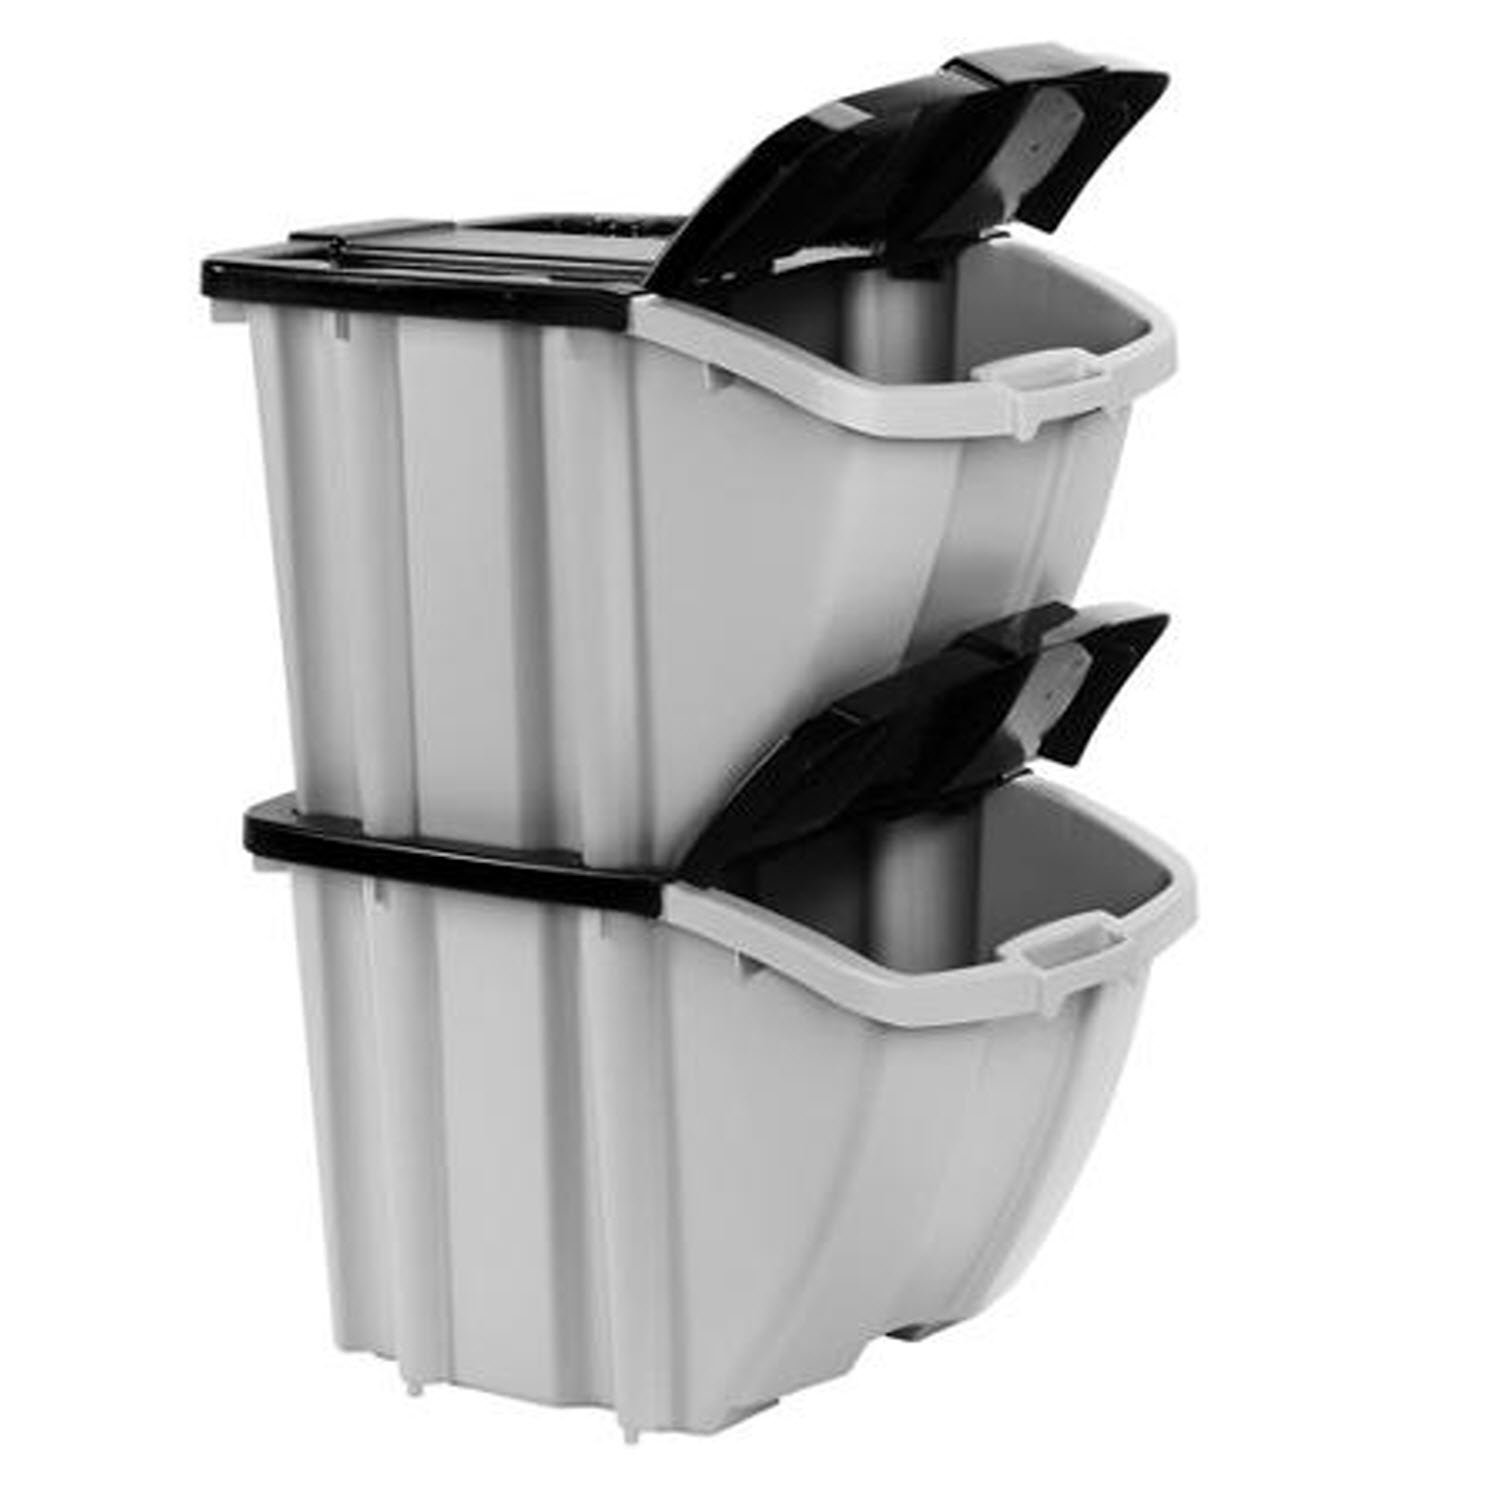 Amazon.com: Suncast Stacking Recycling Bins 2 Bin Value Pack ...